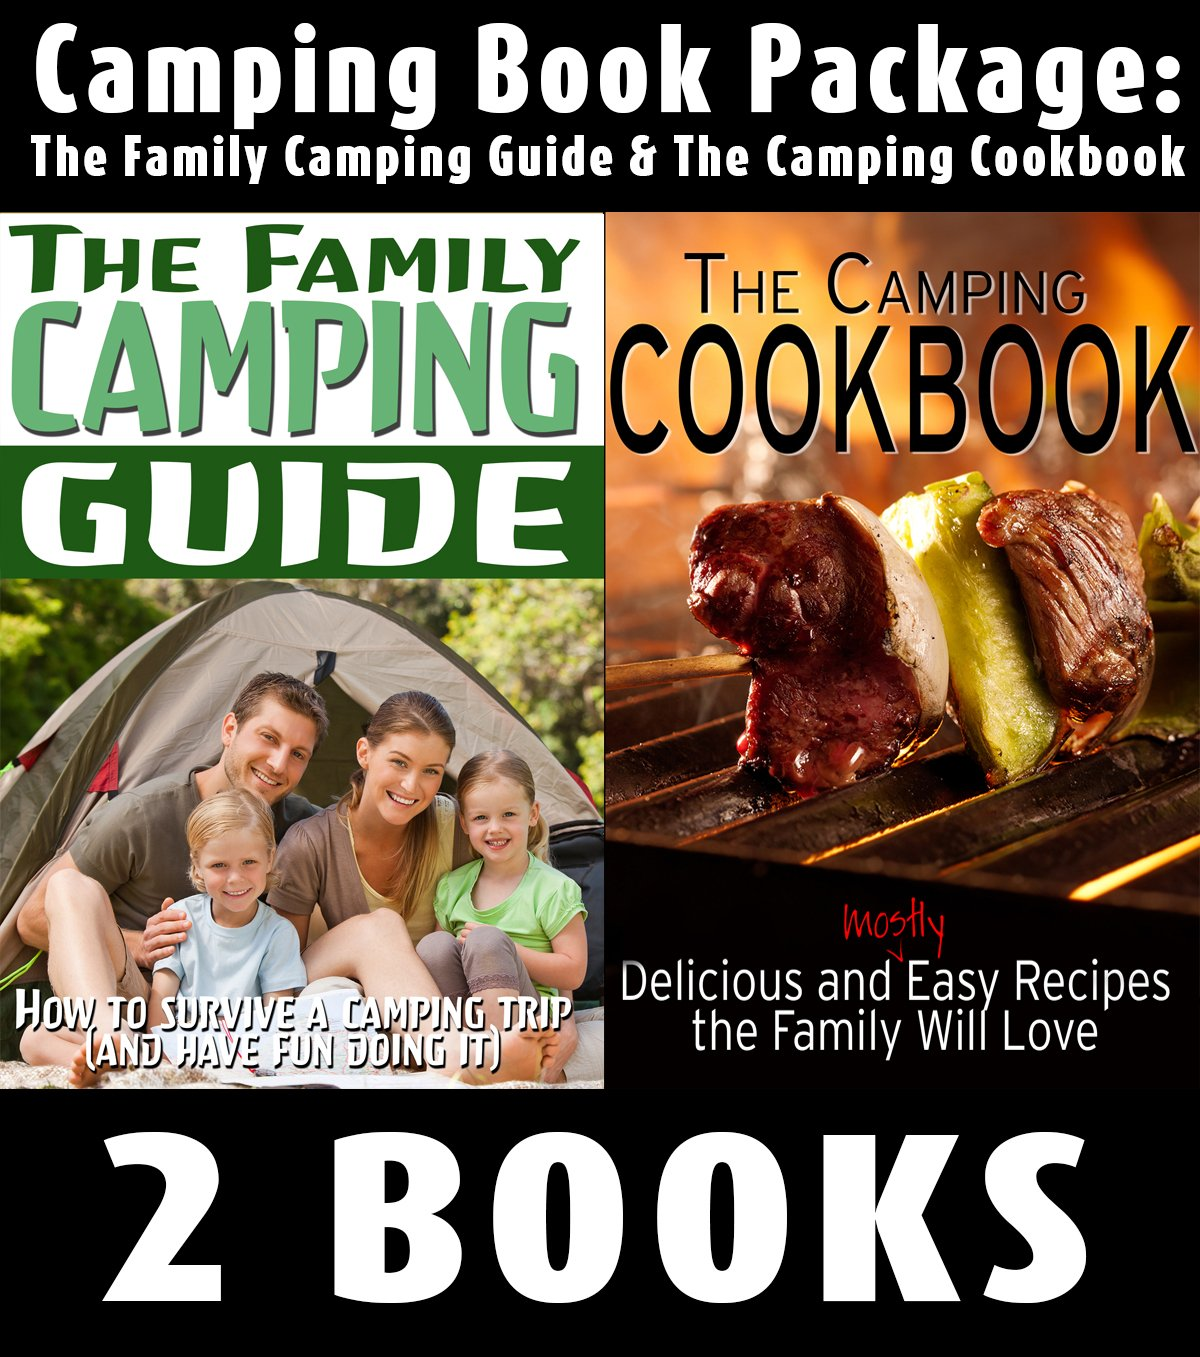 http://www.amazon.com/The-Family-Camping-Book-Package-ebook/dp/B00KPXT8JG/ref=as_sl_pc_ss_til?tag=lettfromahome-20&linkCode=w01&linkId=GRYJYZ62F3VOAUSS&creativeASIN=B00KPXT8JG